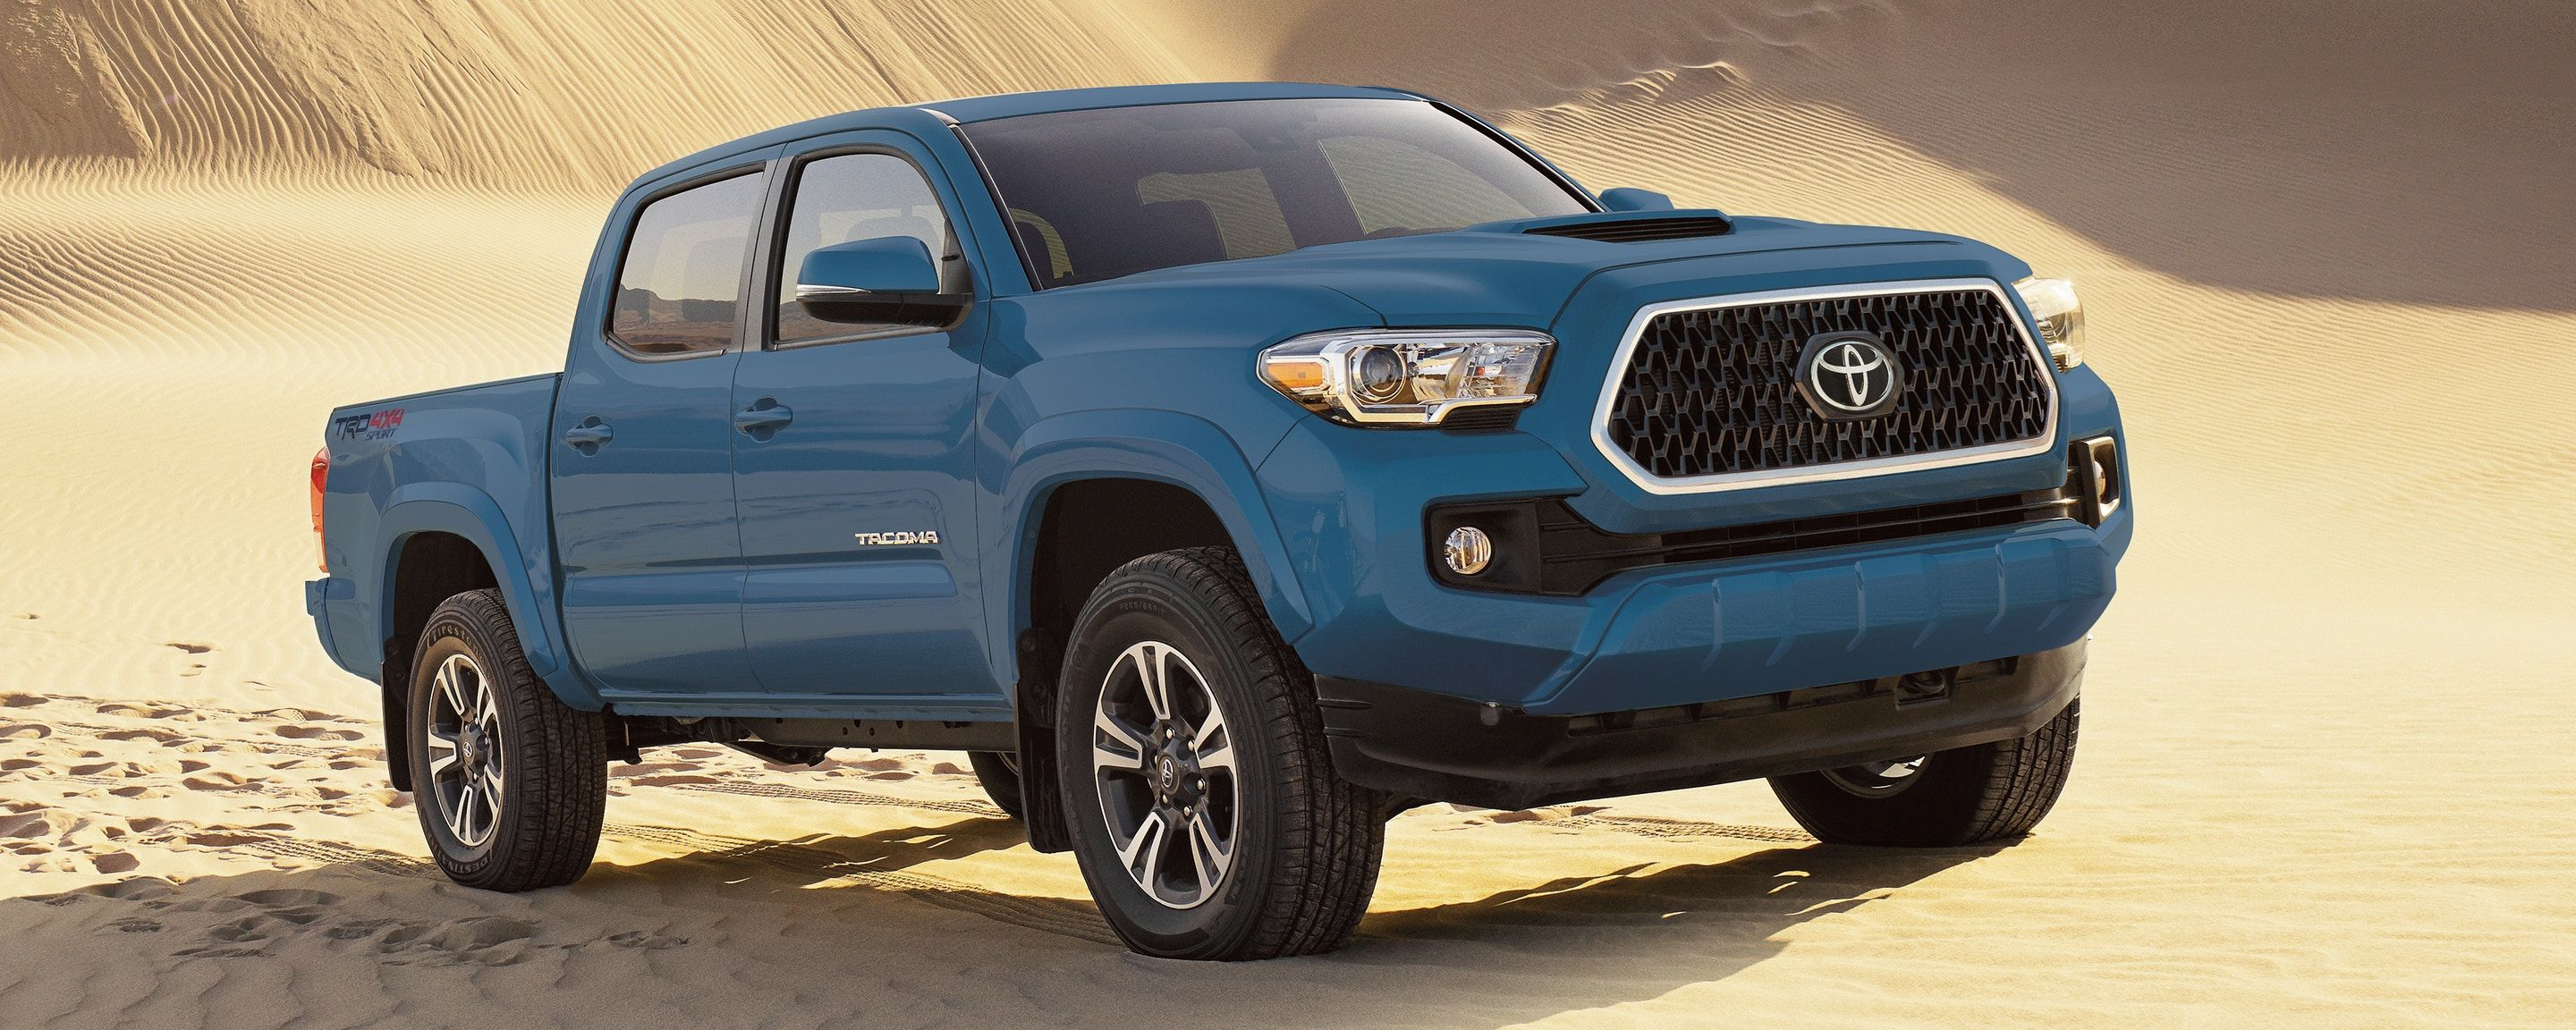 2019 Toyota Tacoma for Sale near Oxford, PA